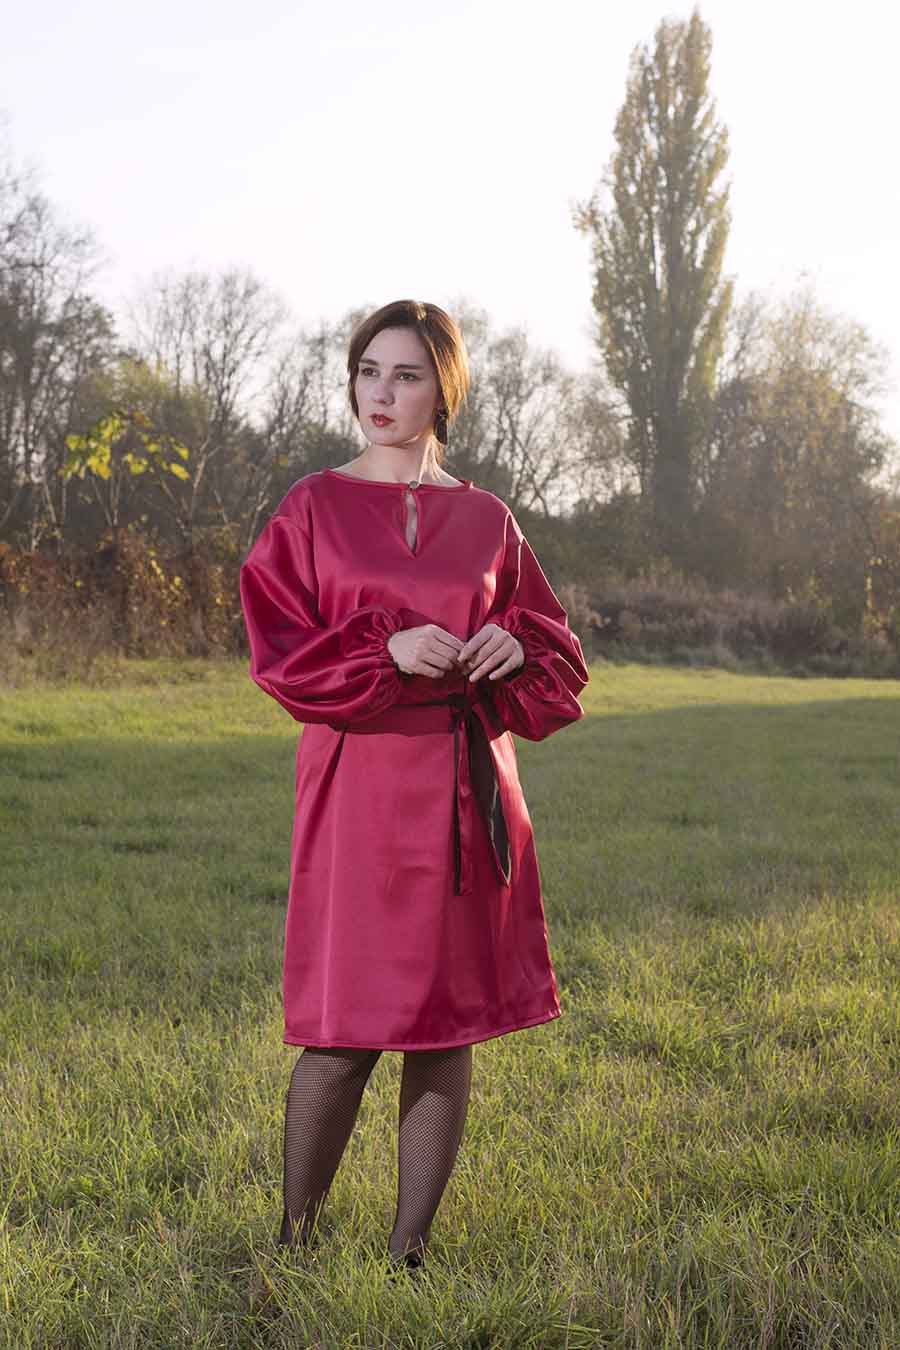 Red satin dress with puffy sleeves and belt